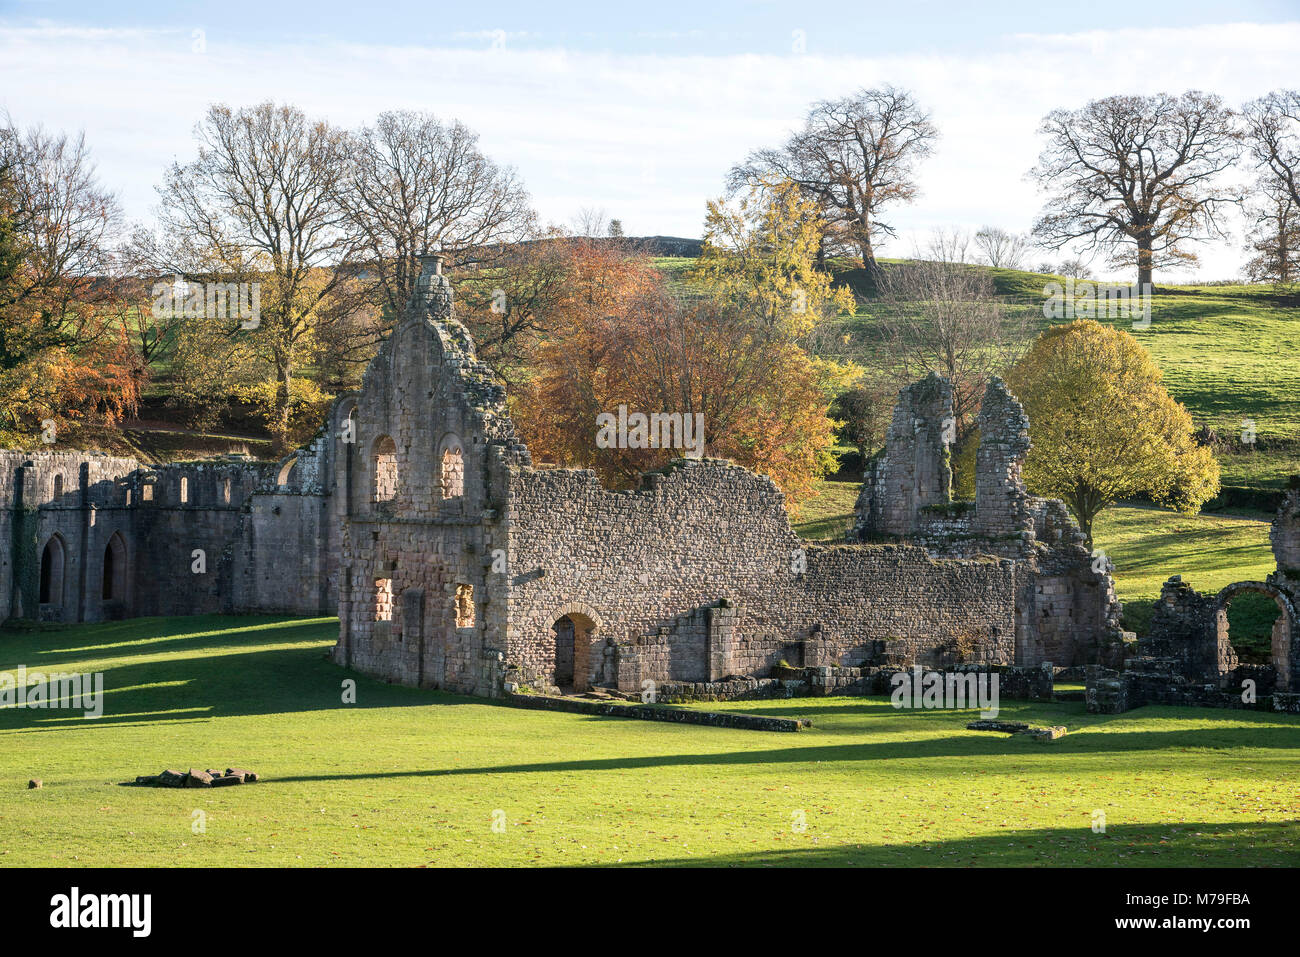 Fountains Abbey situated in Ripon North Yorkshire England UK. National Trust - Stock Image